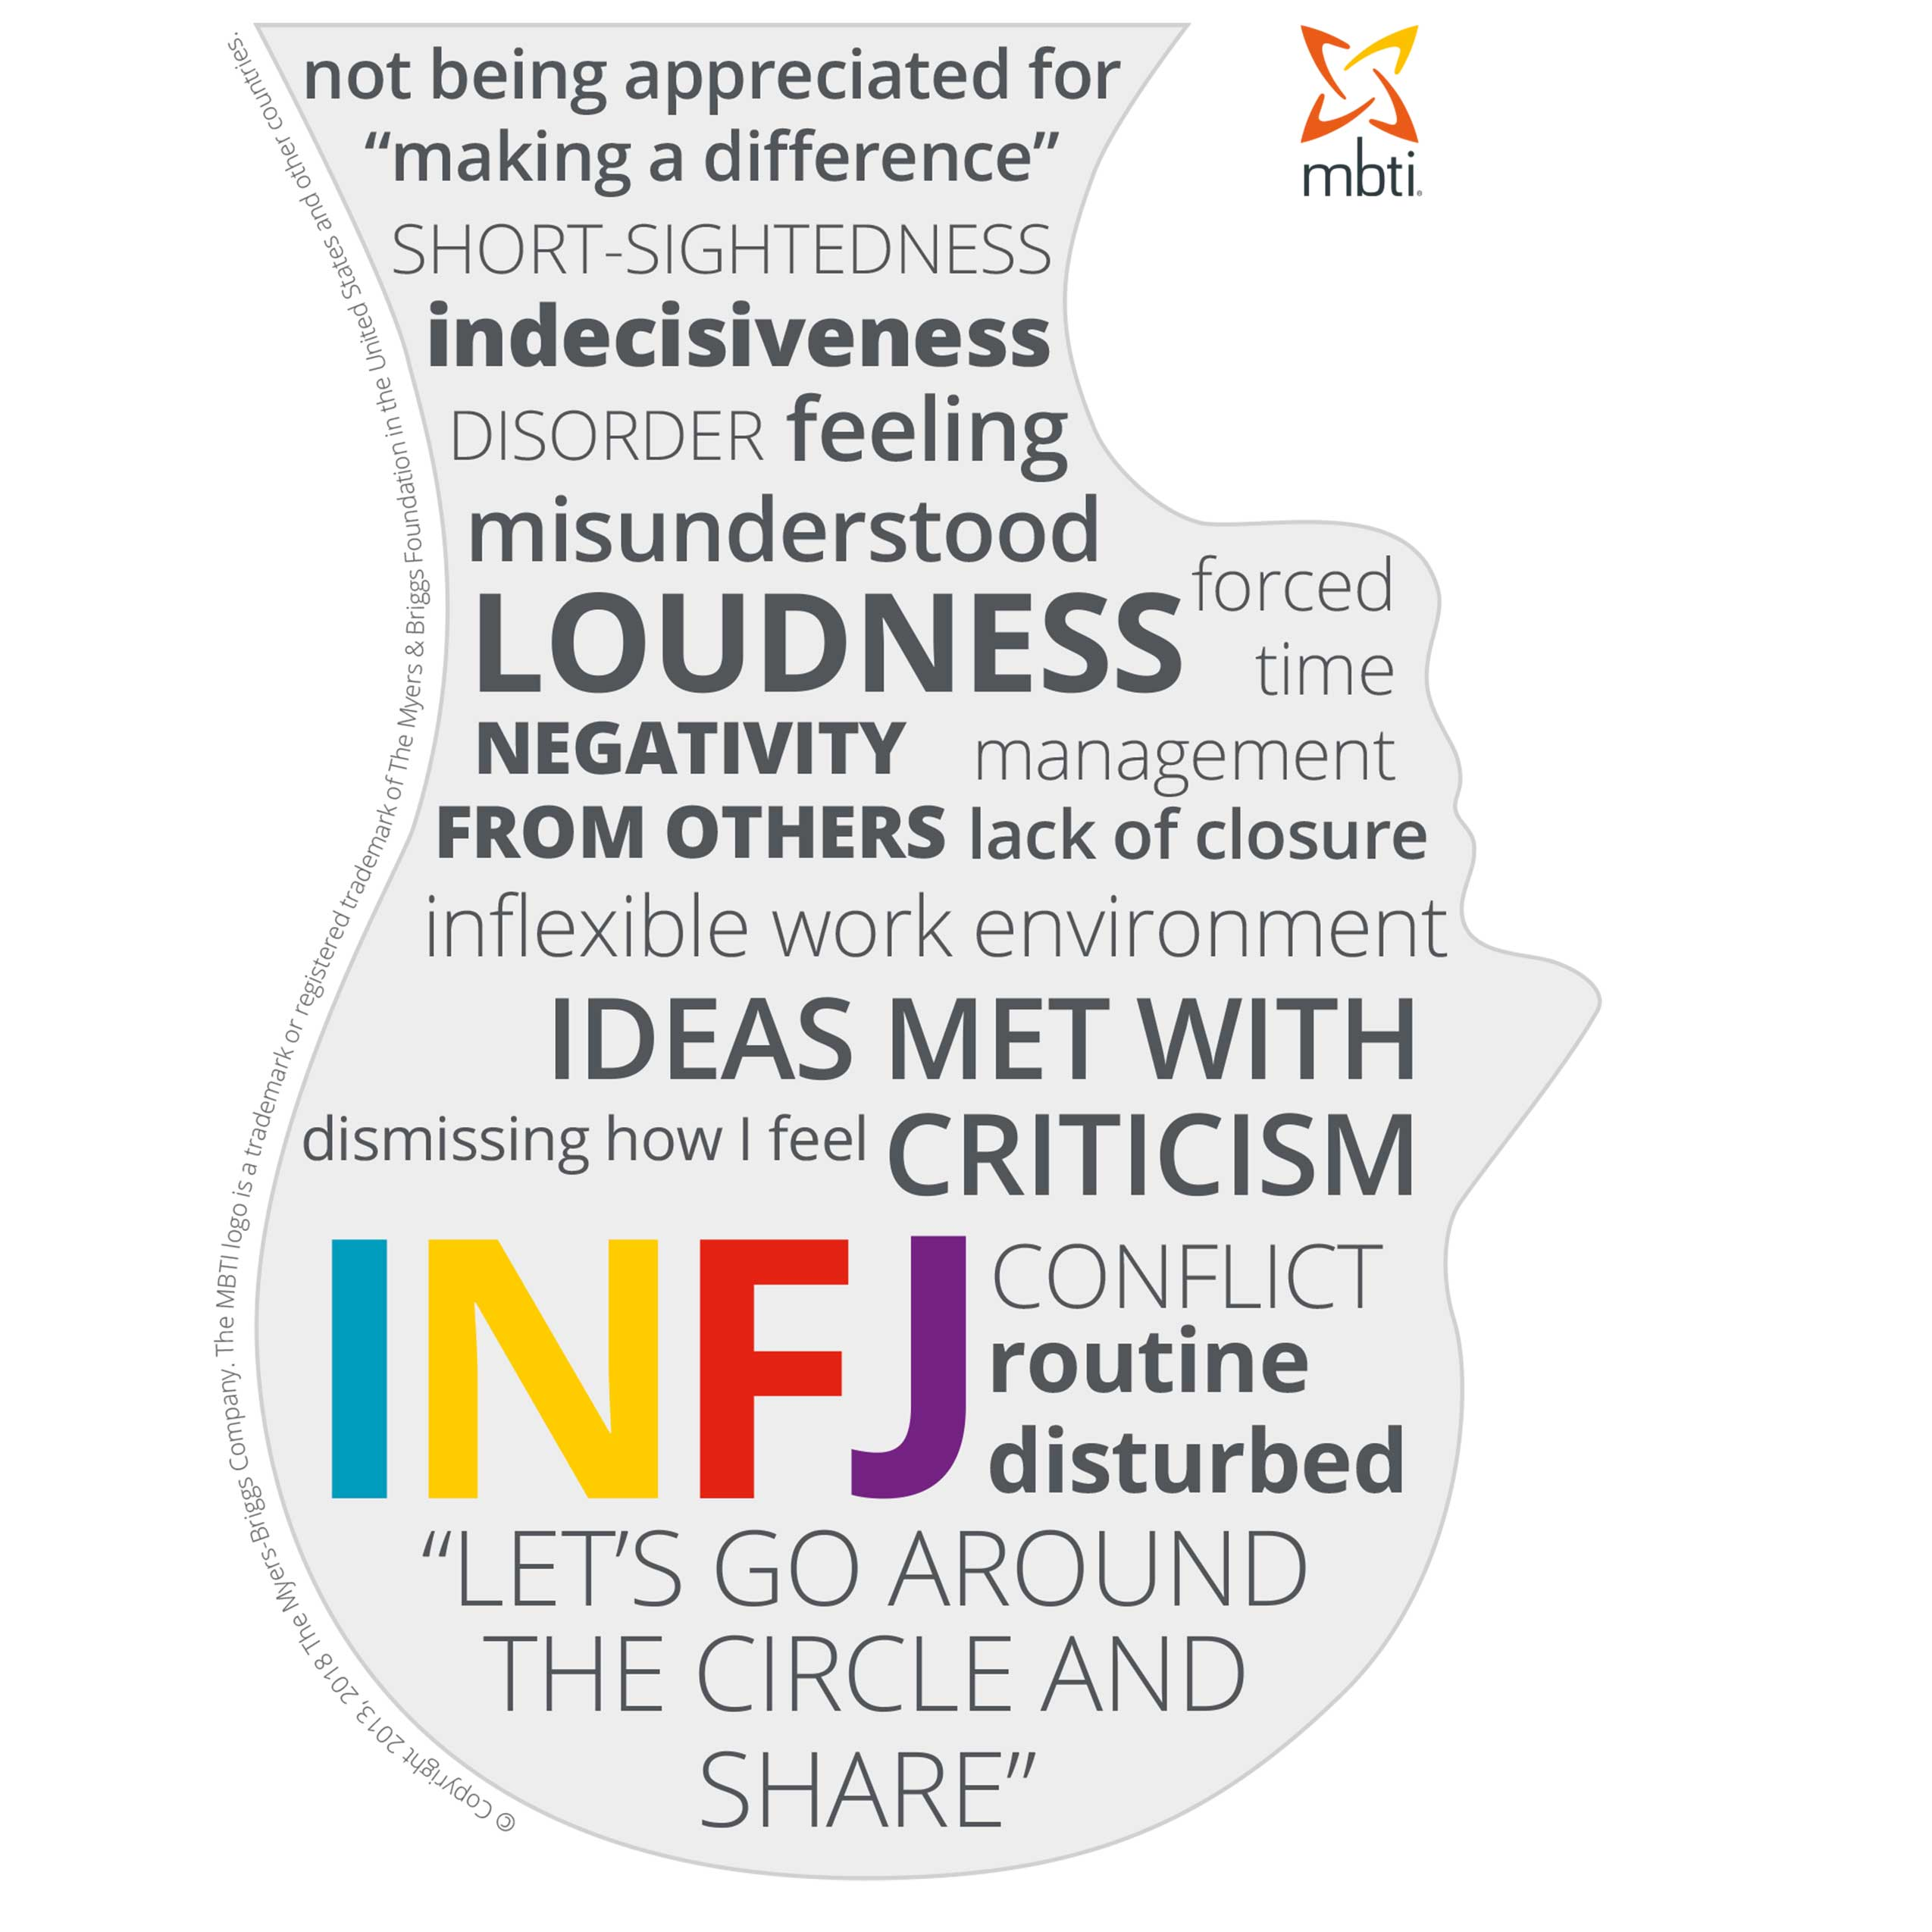 Typical stress triggers for INFJs